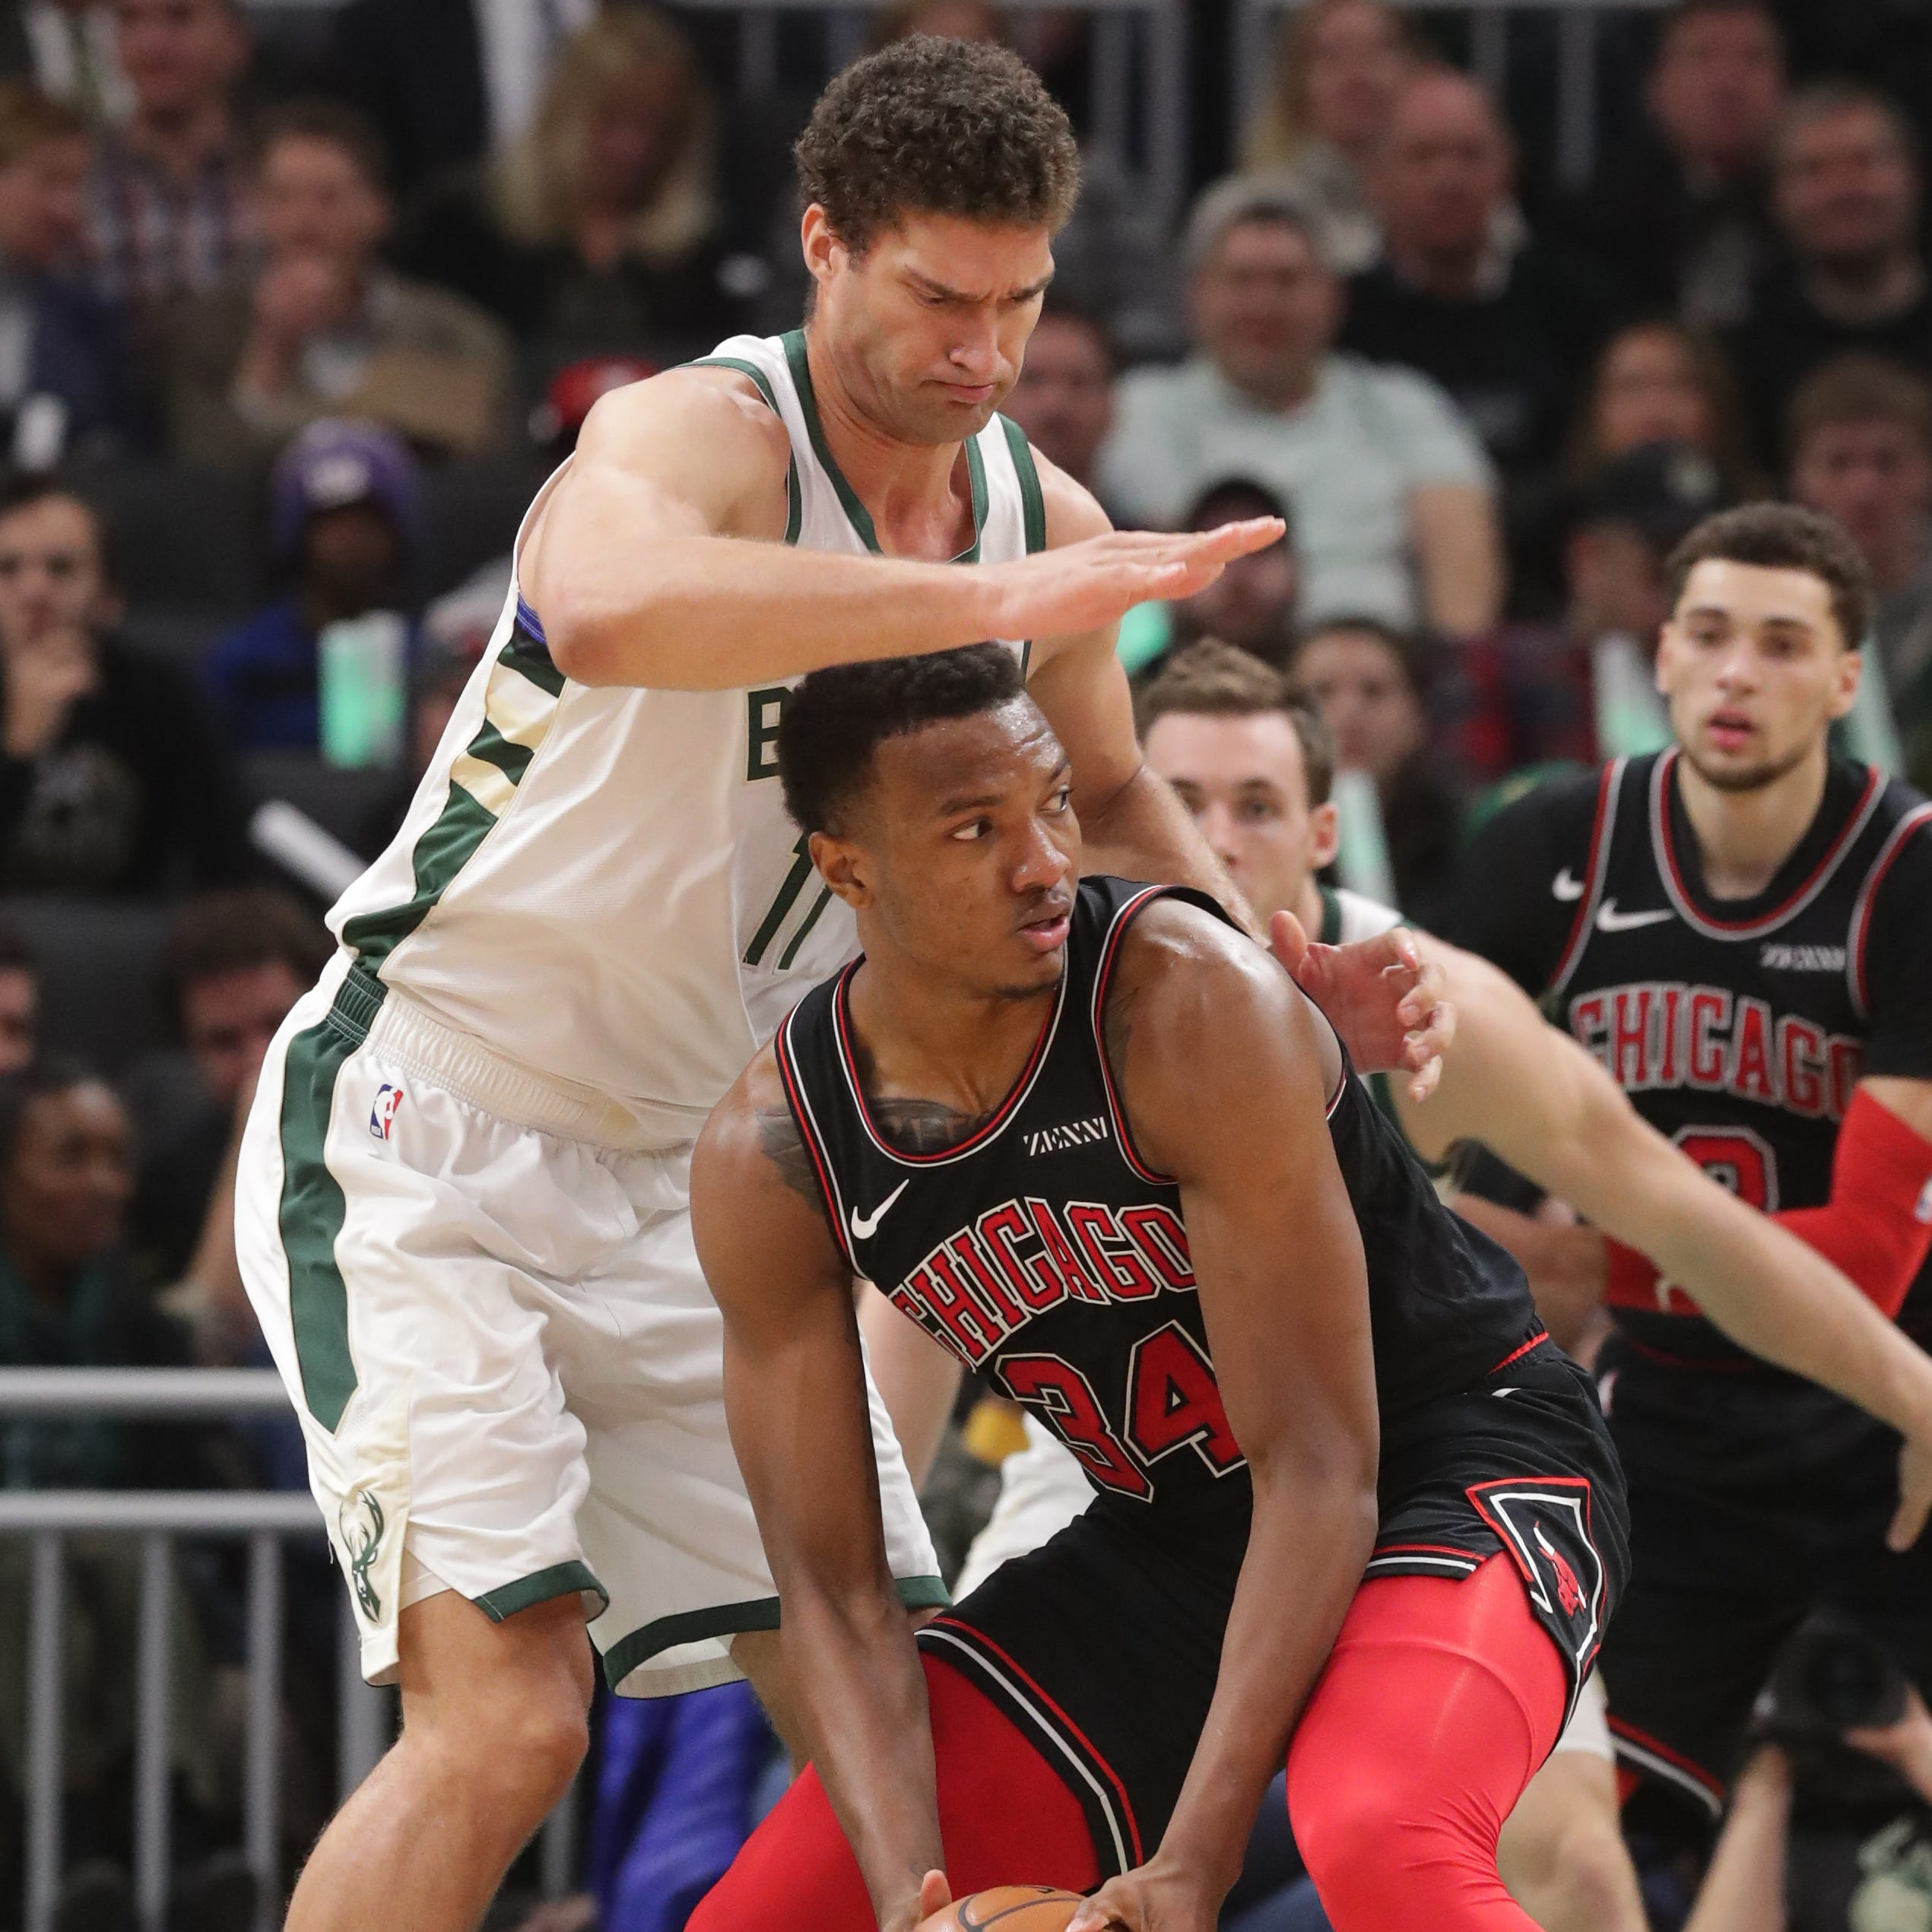 Many factors played into the Bucks' impressive turnaround, but one player stands out